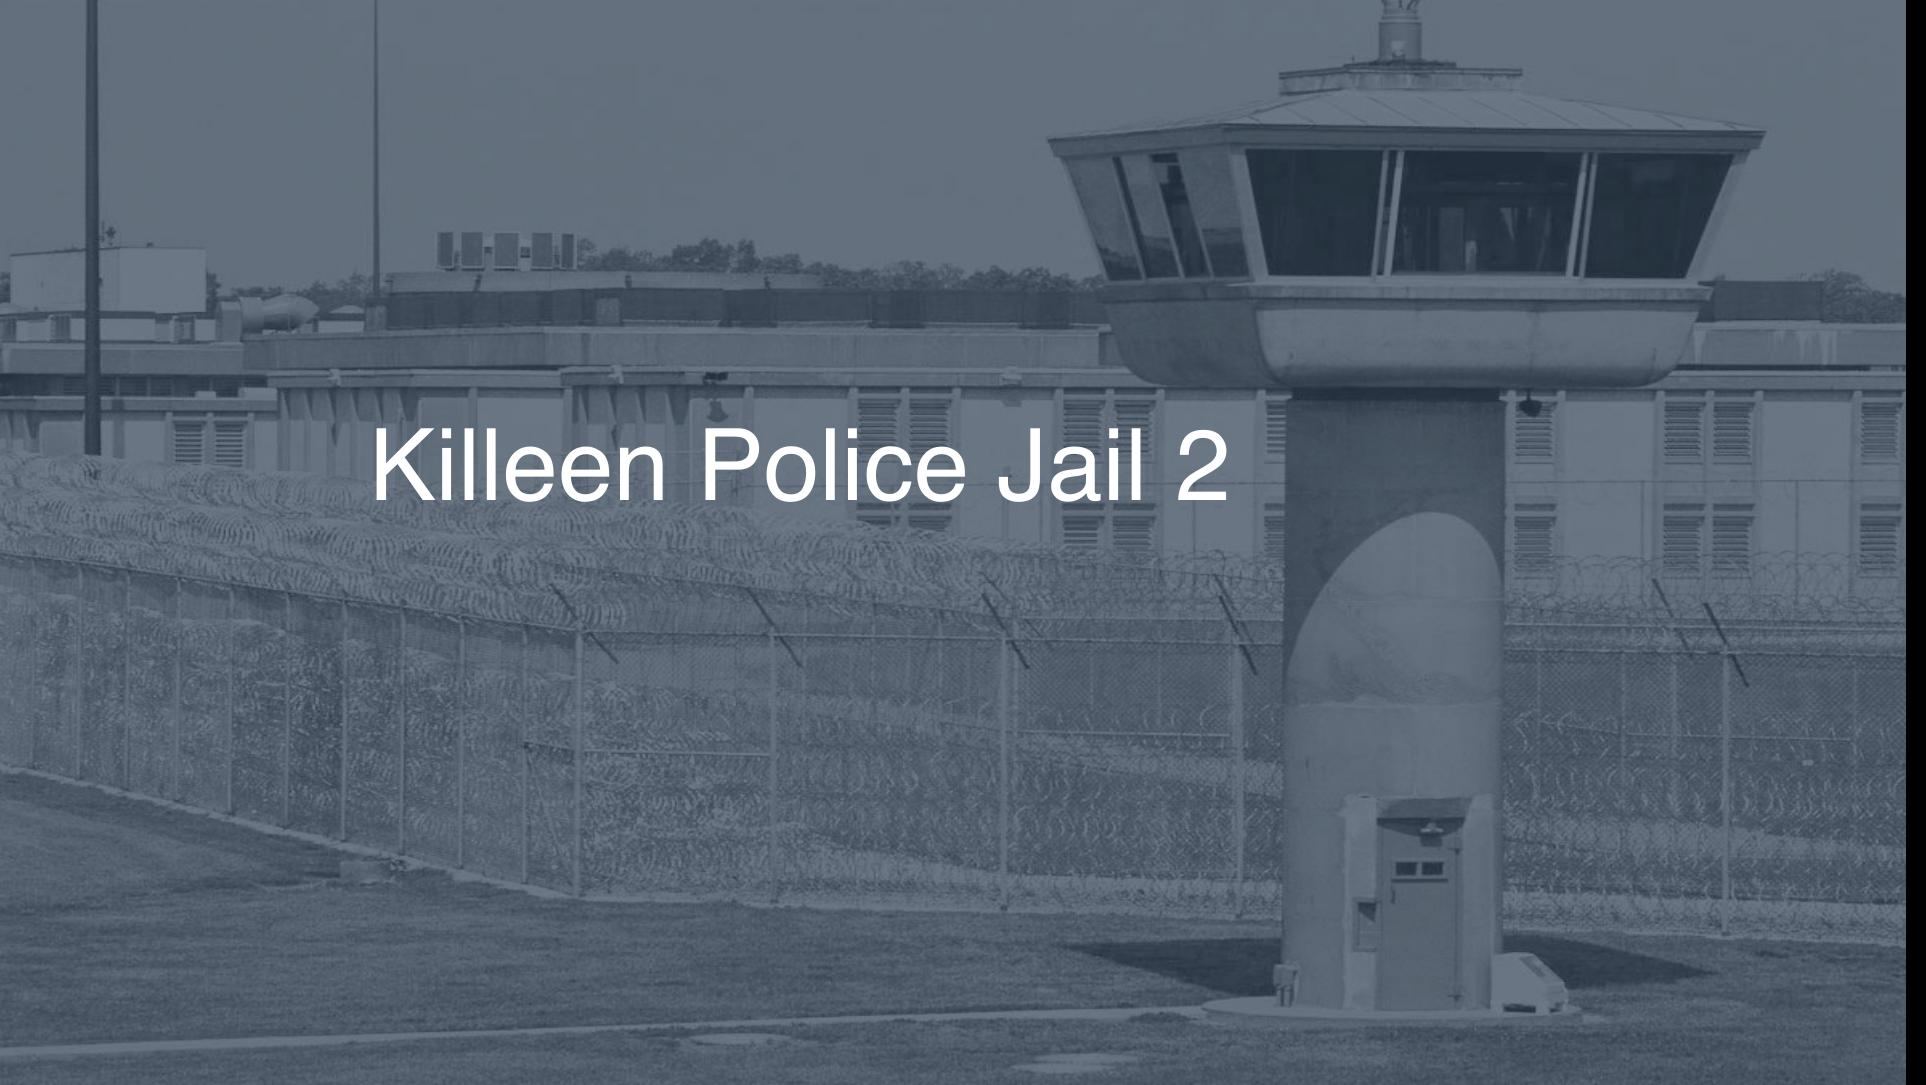 Killeen Police Jail Inmate Search, Lookup & Services - Pigeonly